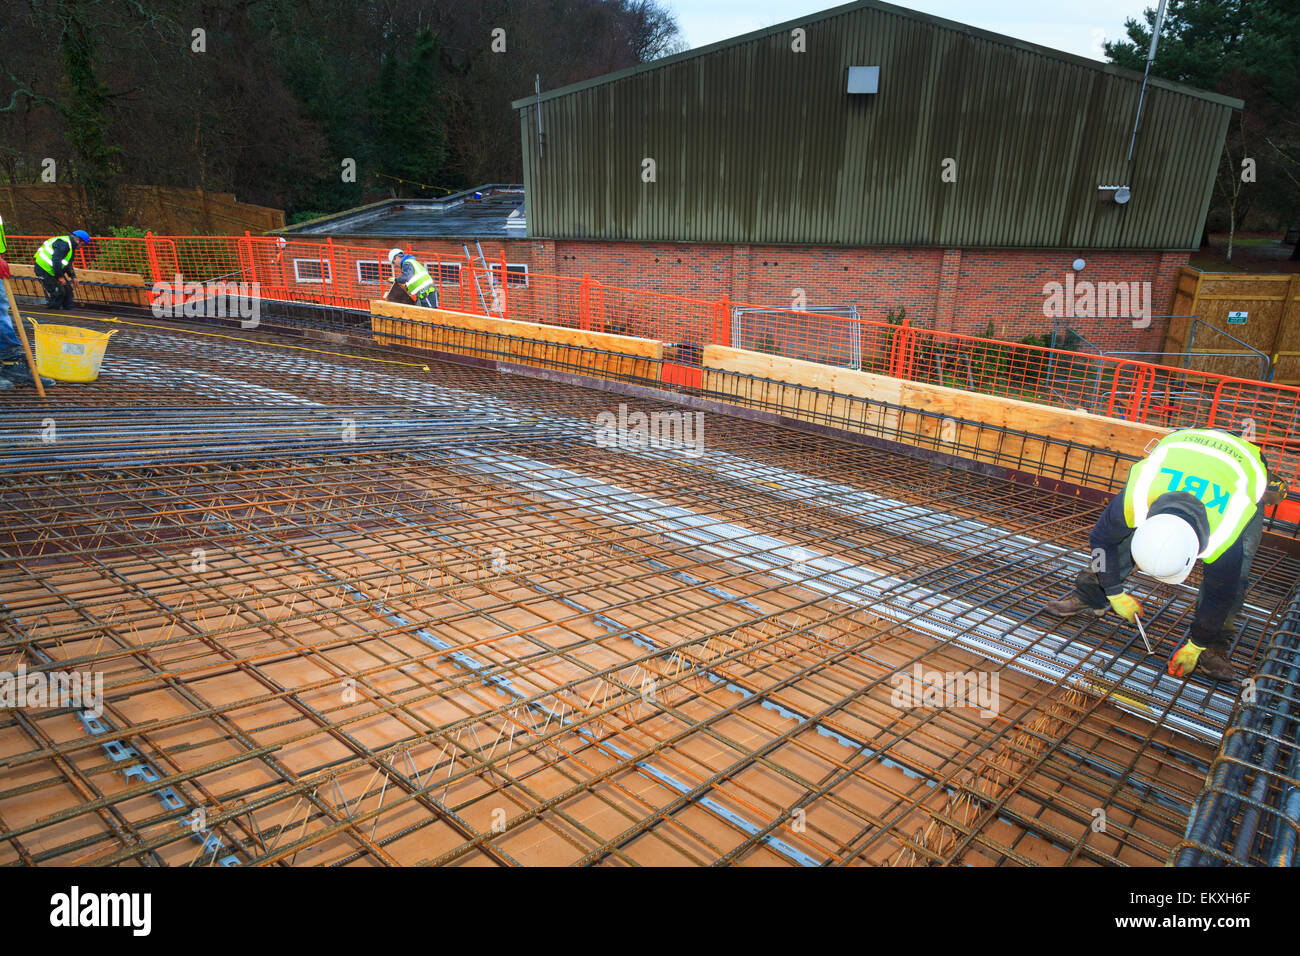 Reinforcing Bar Stockfotos & Reinforcing Bar Bilder - Seite 3 - Alamy